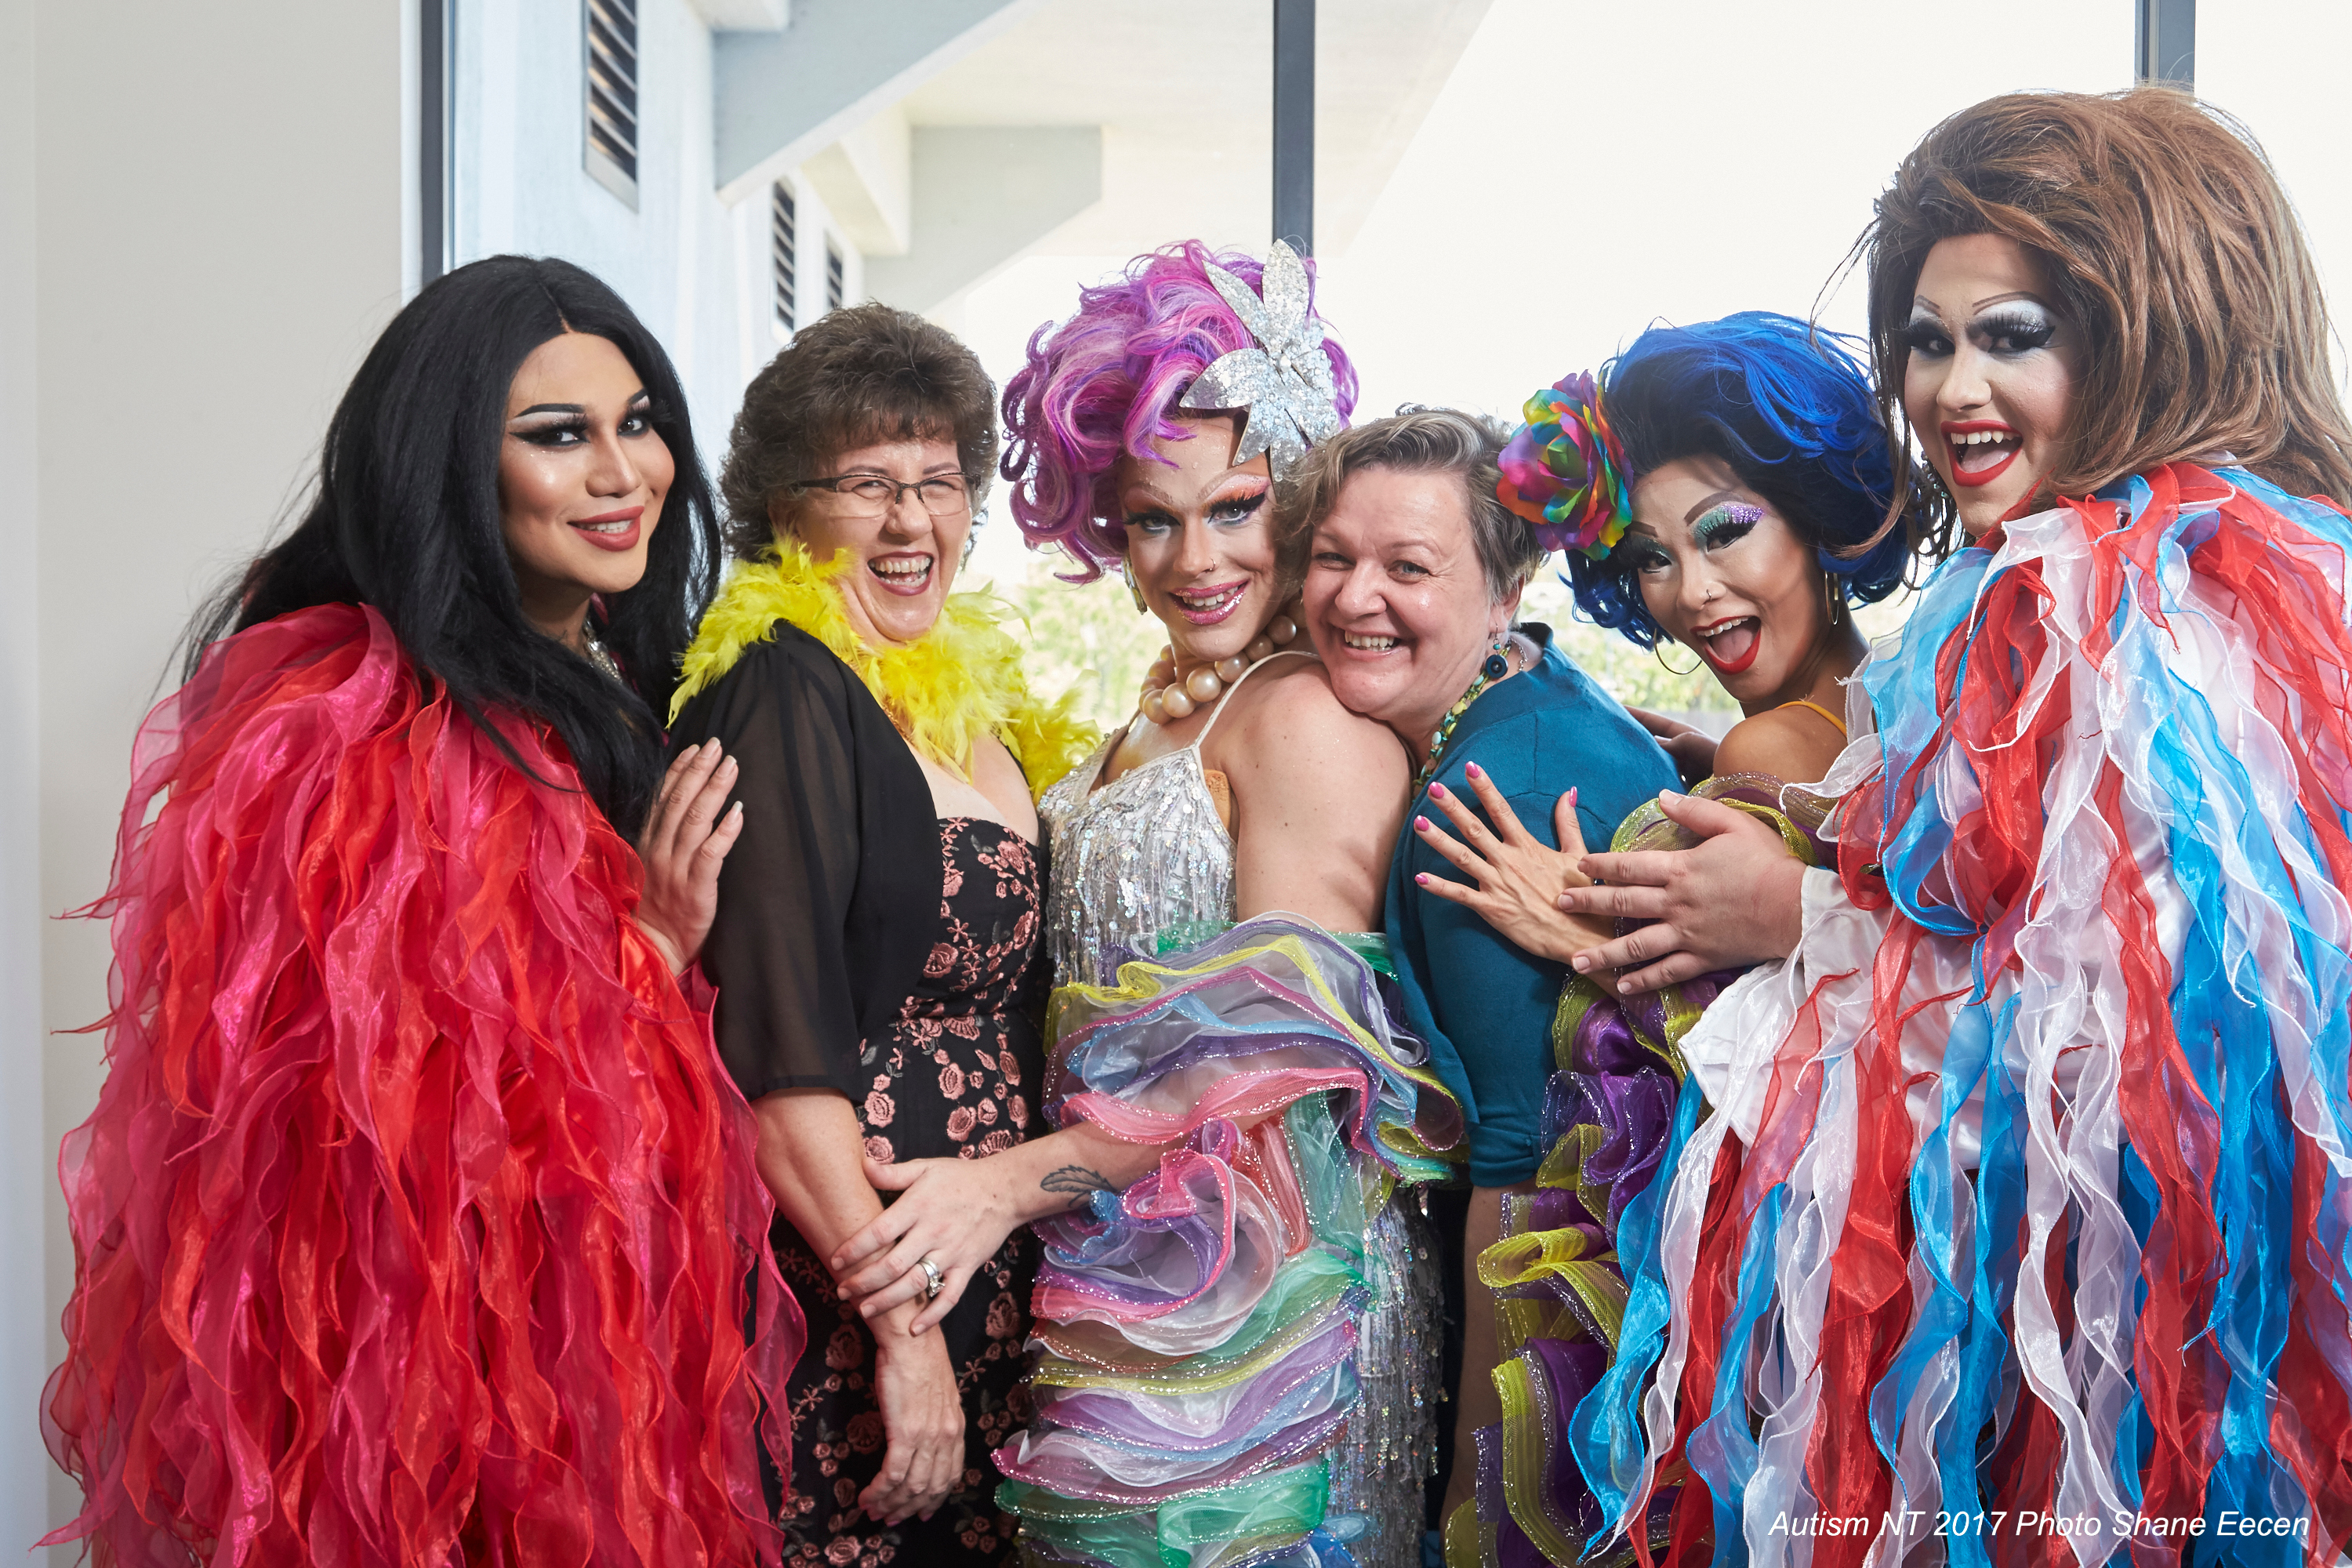 Autism NT Fundraising Luncheon 18 October 2017. Rydges palmerston. Photo Shane Eecen